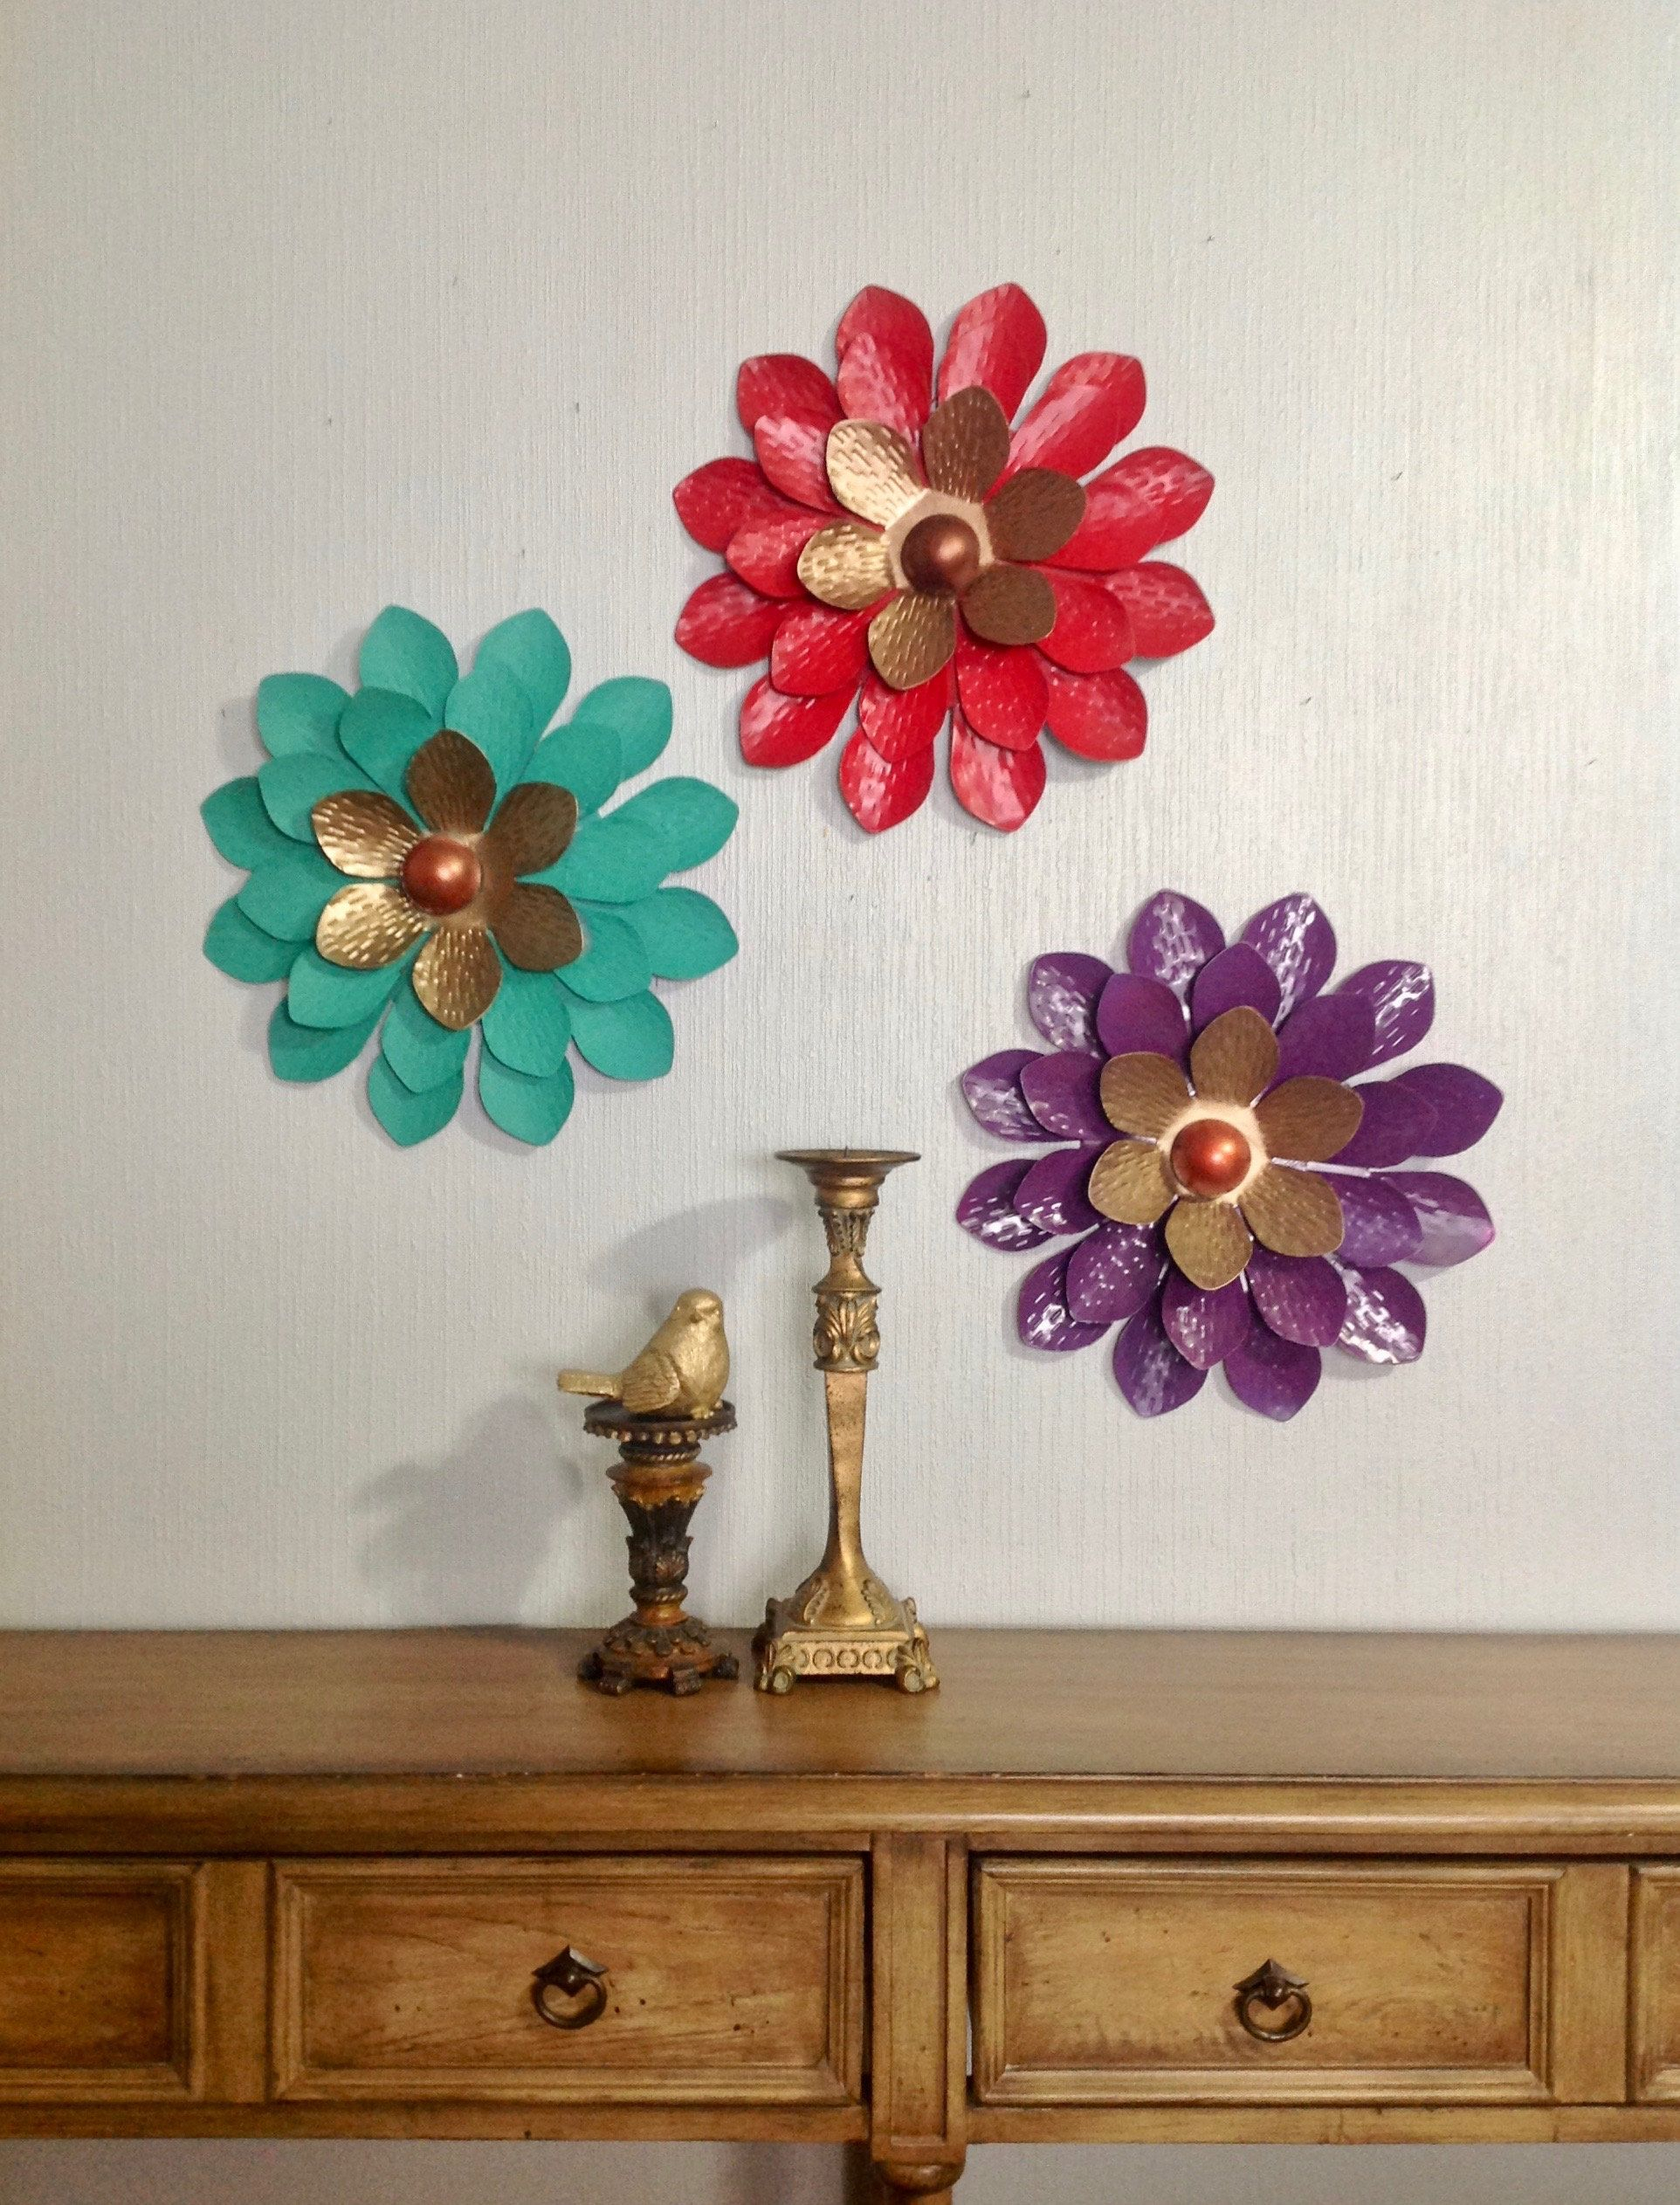 The Best Metal Flower Wall Decor (Set Of 3) With Regard To Metal Flower Wall Decor (Set Of 3) (View 10 of 30)